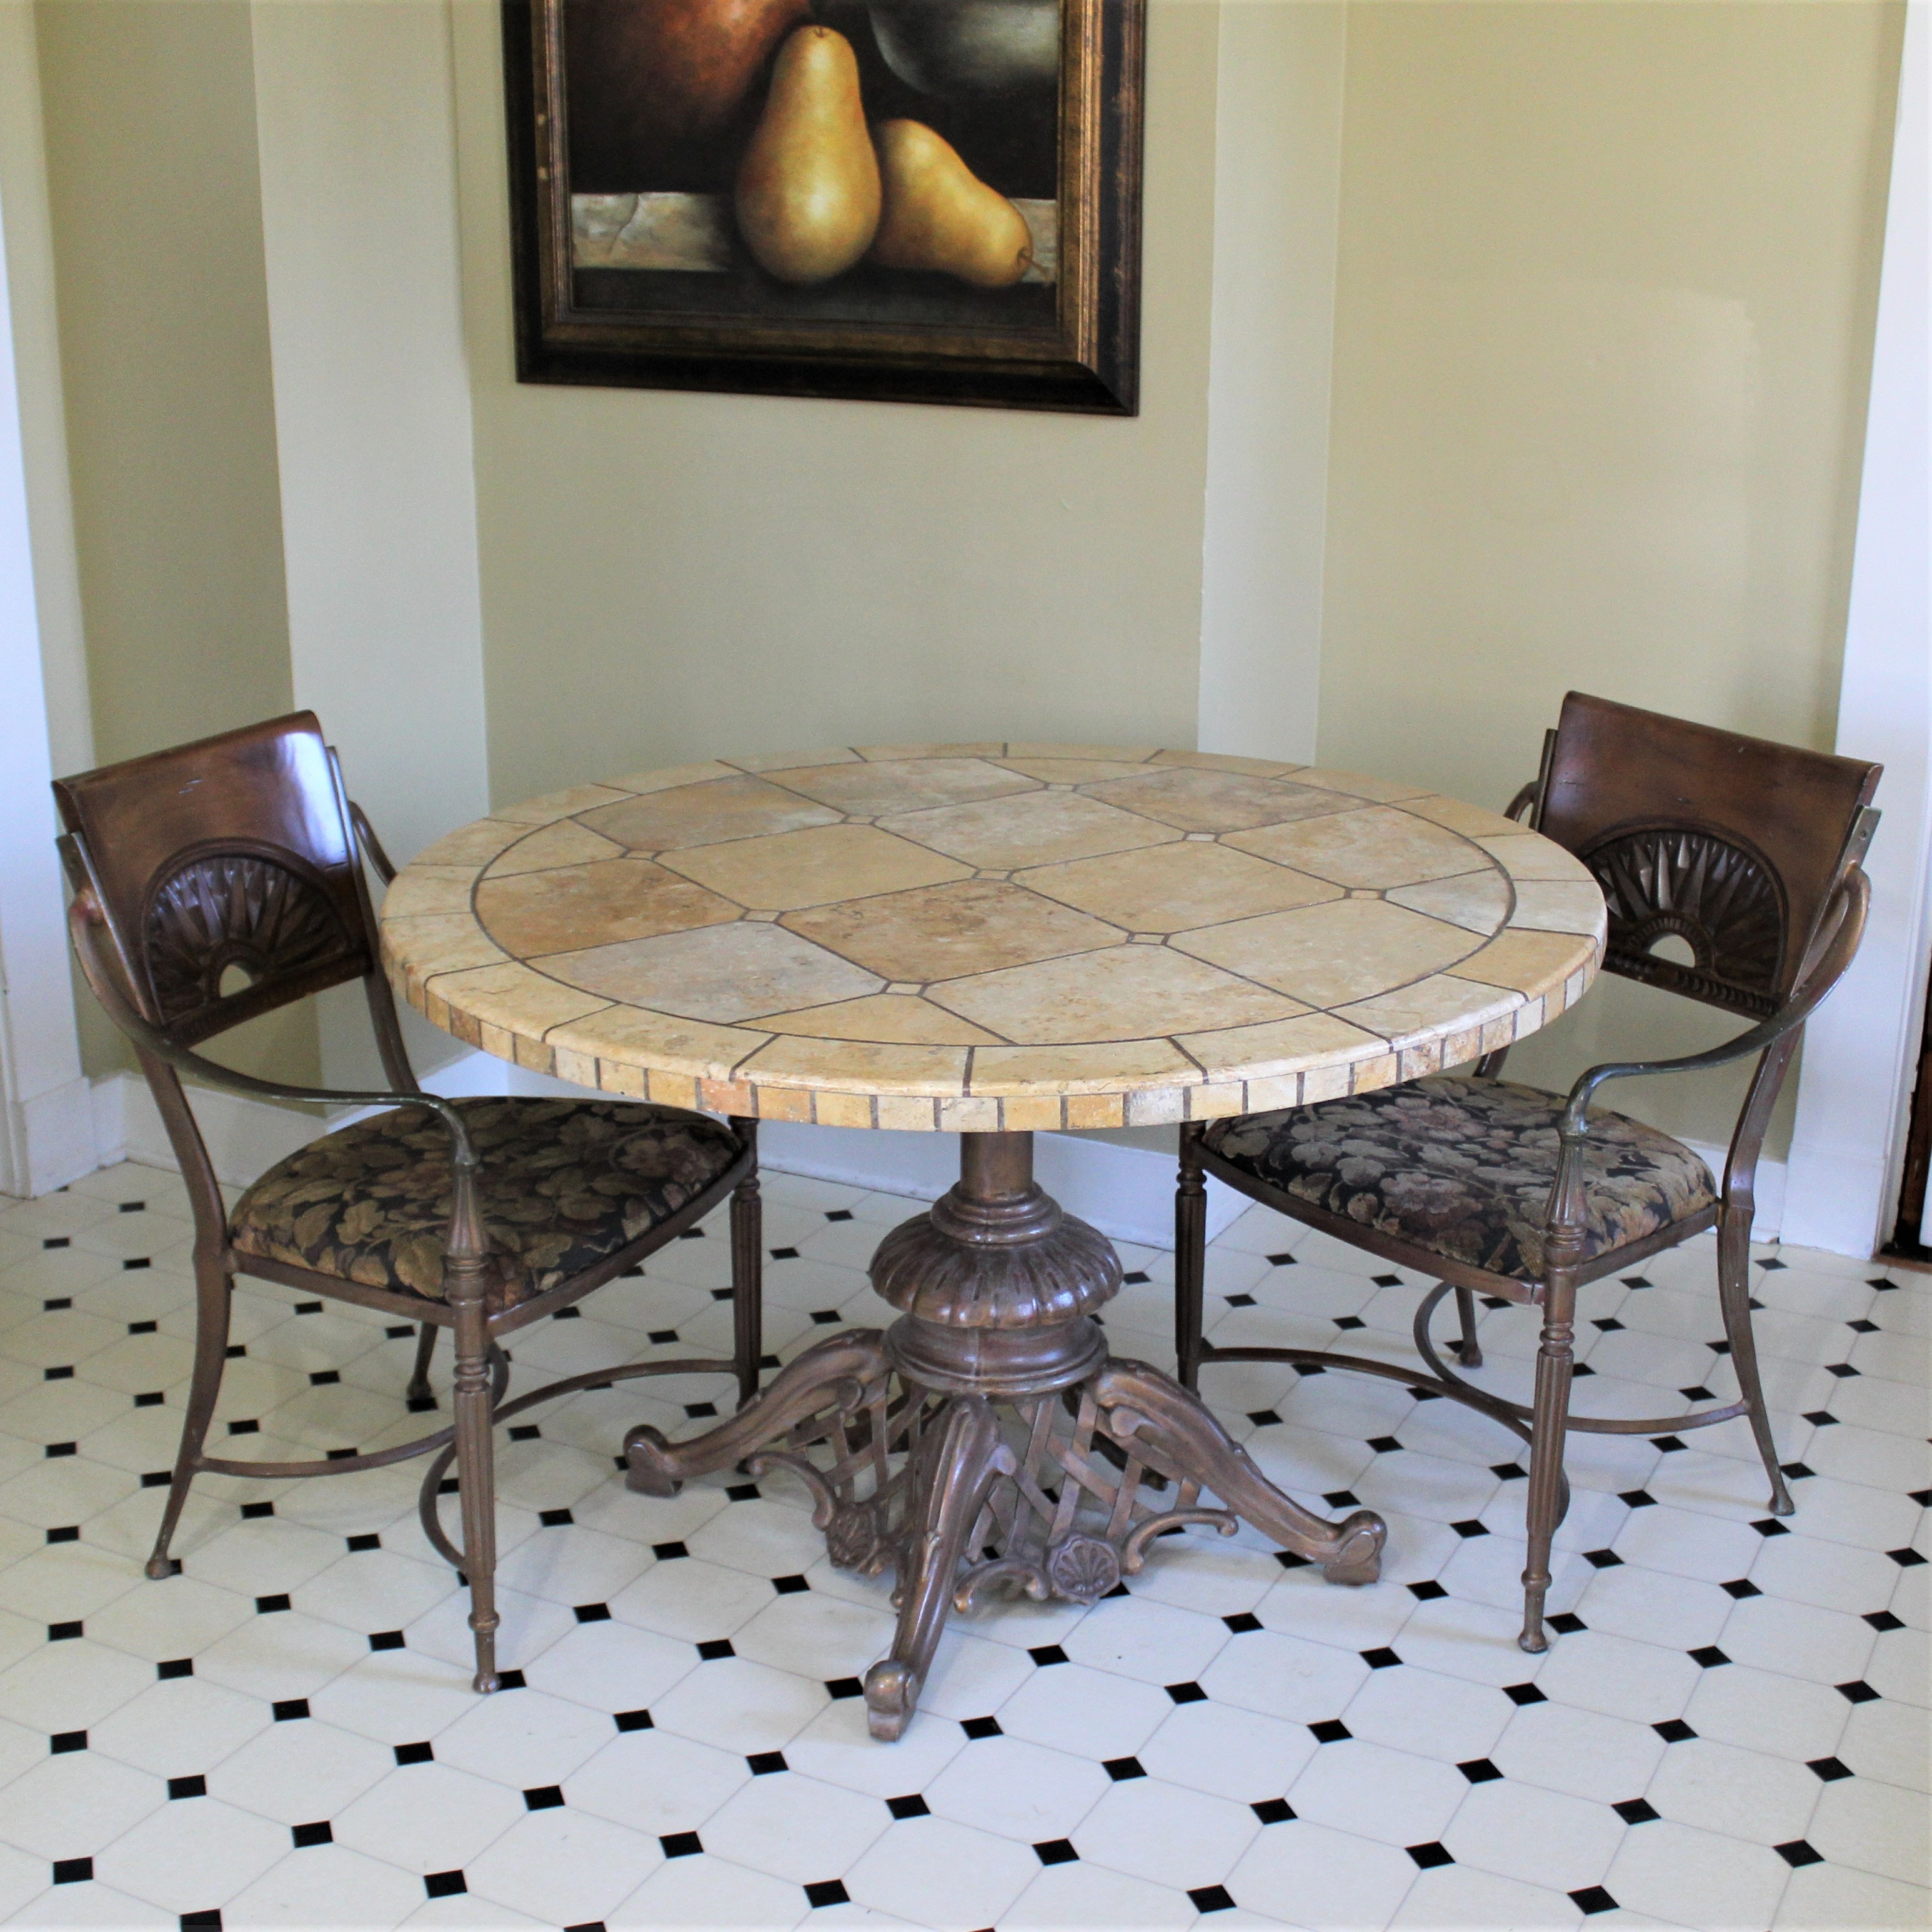 Cermaic Tile Dinnette Table & Chairs